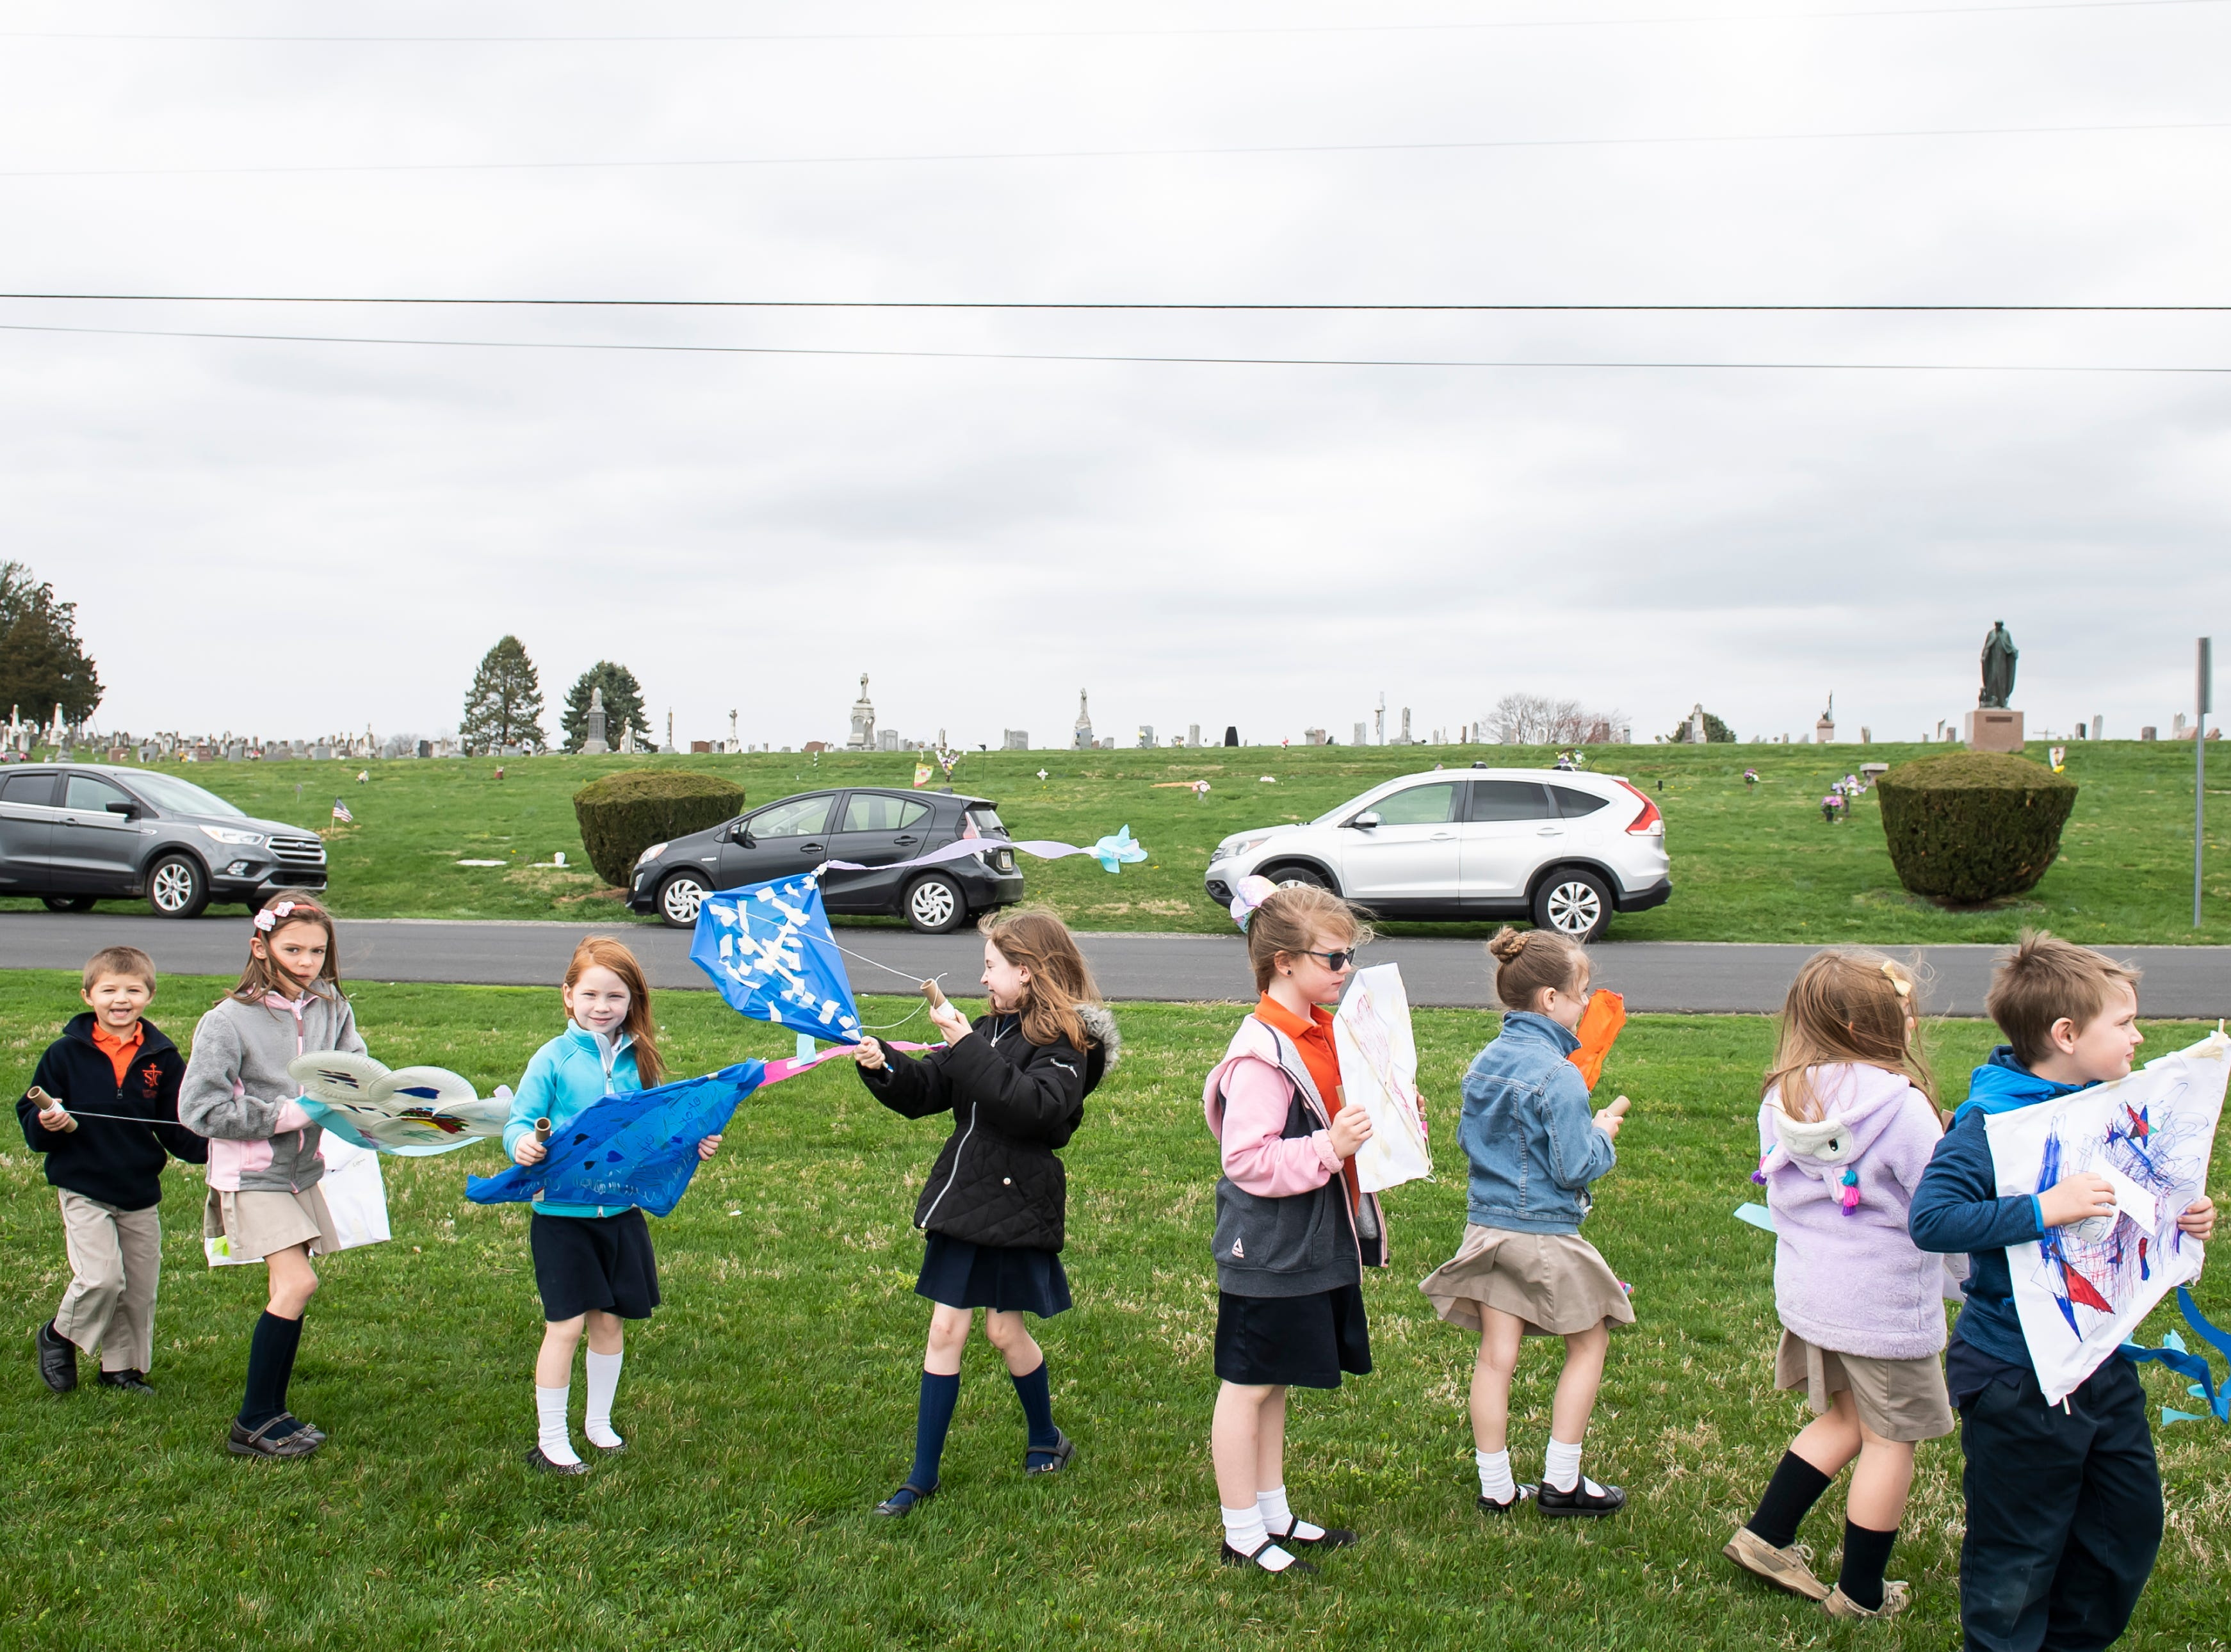 Students from St. Teresa of Calcutta Catholic School prepare to fly their homemade kites at the school's Conewago campus on Friday, April 12, 2019.